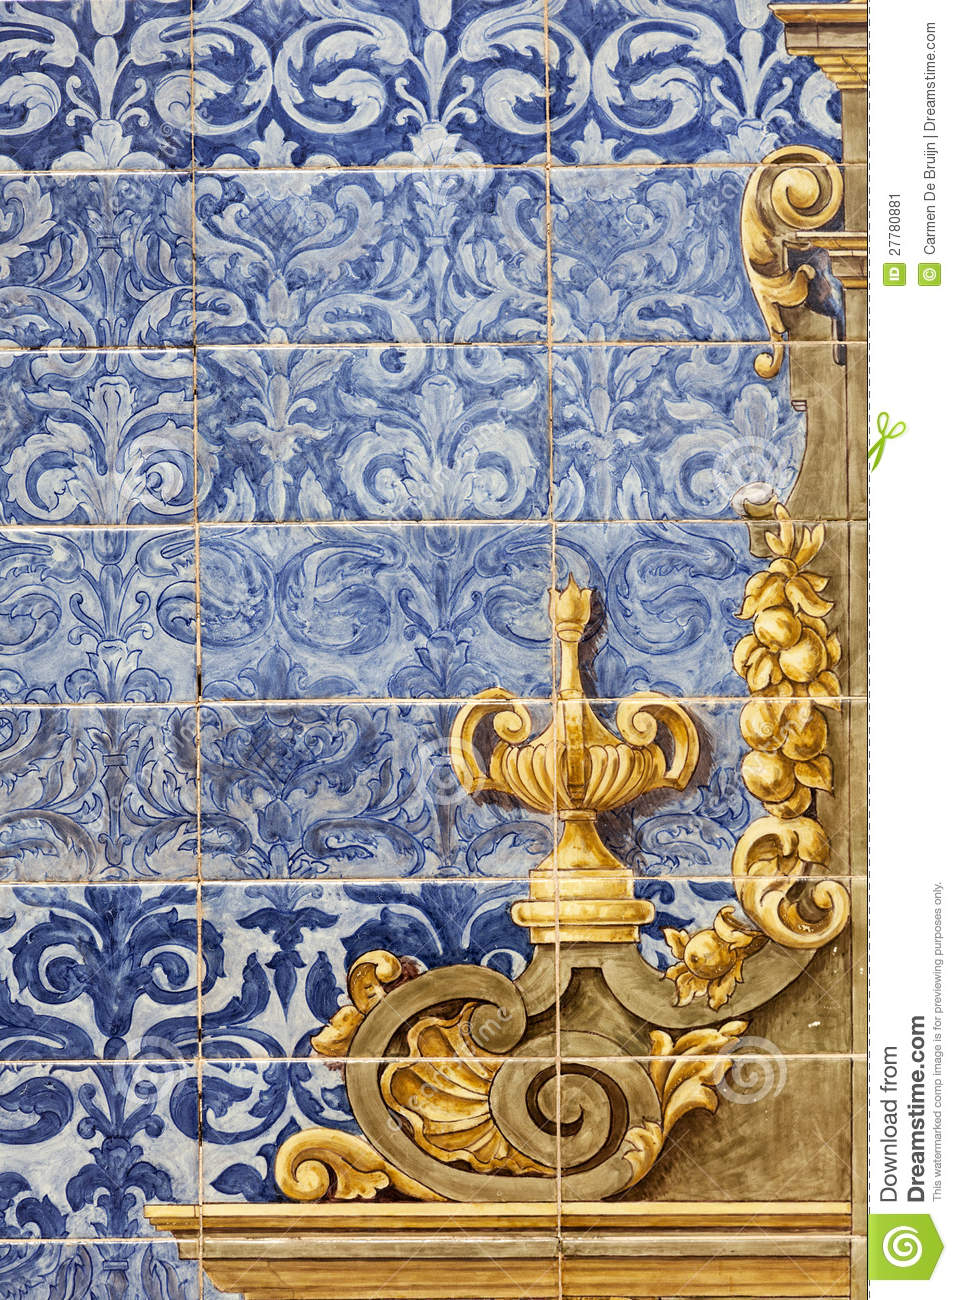 Ceramic Wall Tiles In Seville Spain Stock Image Image